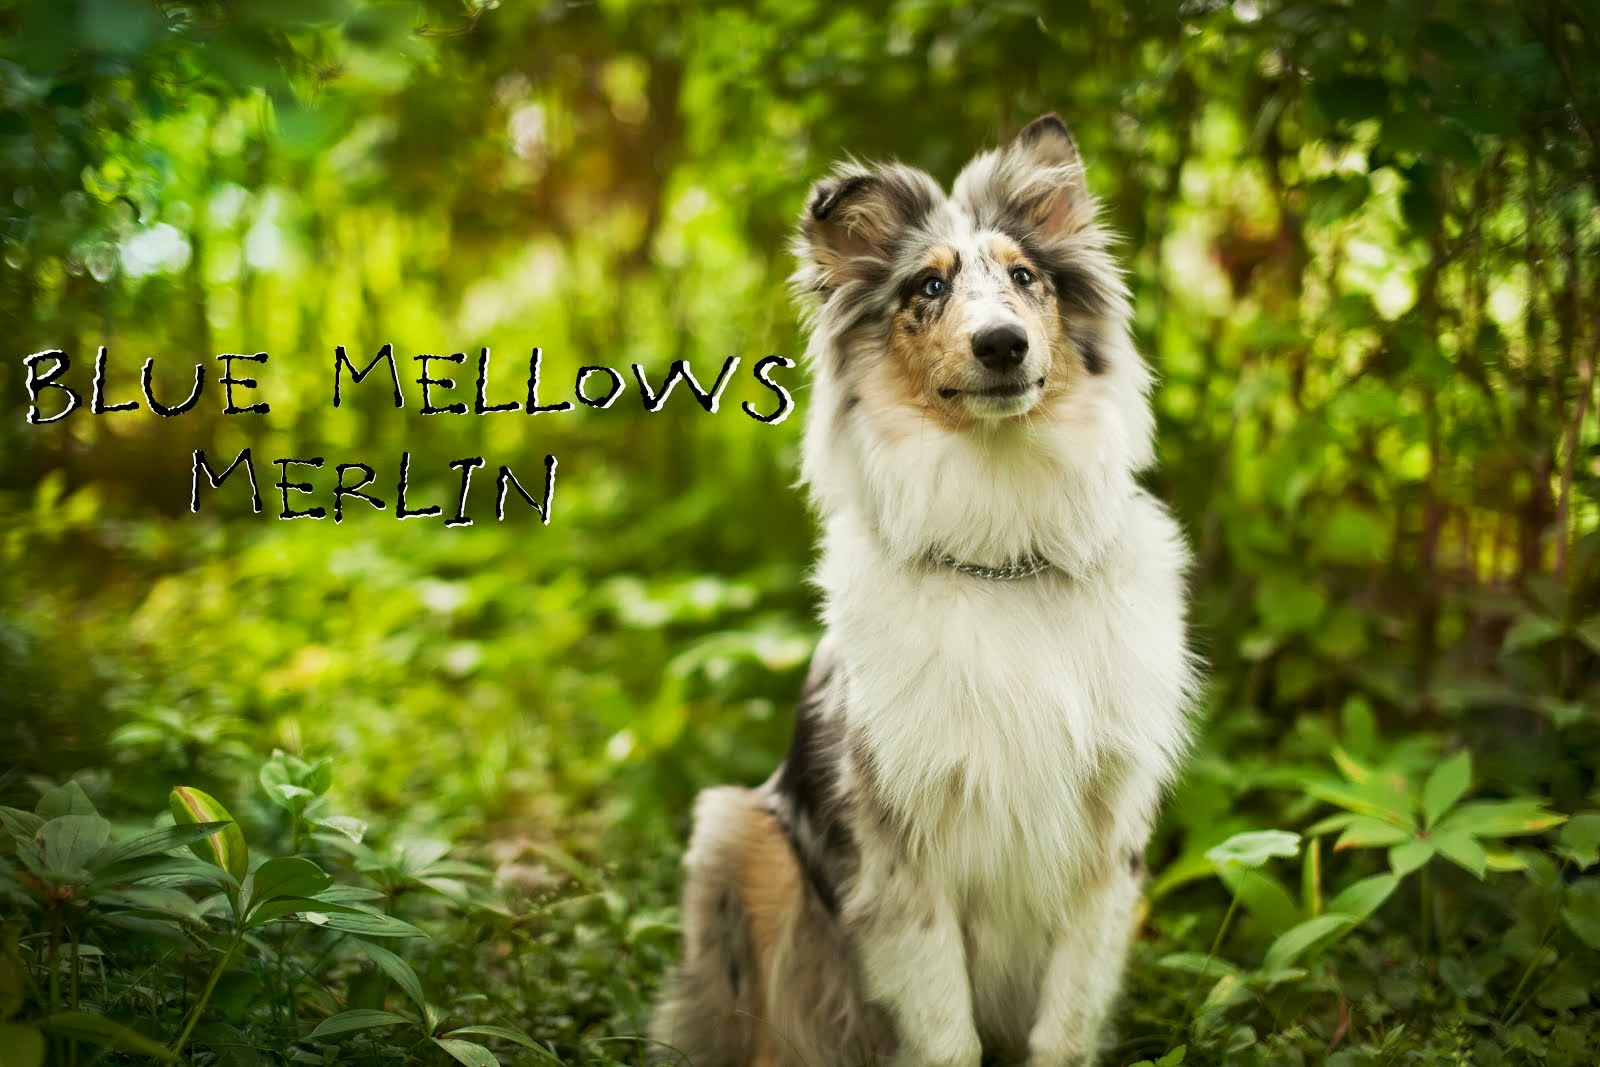 Blue Mellow's Merlin